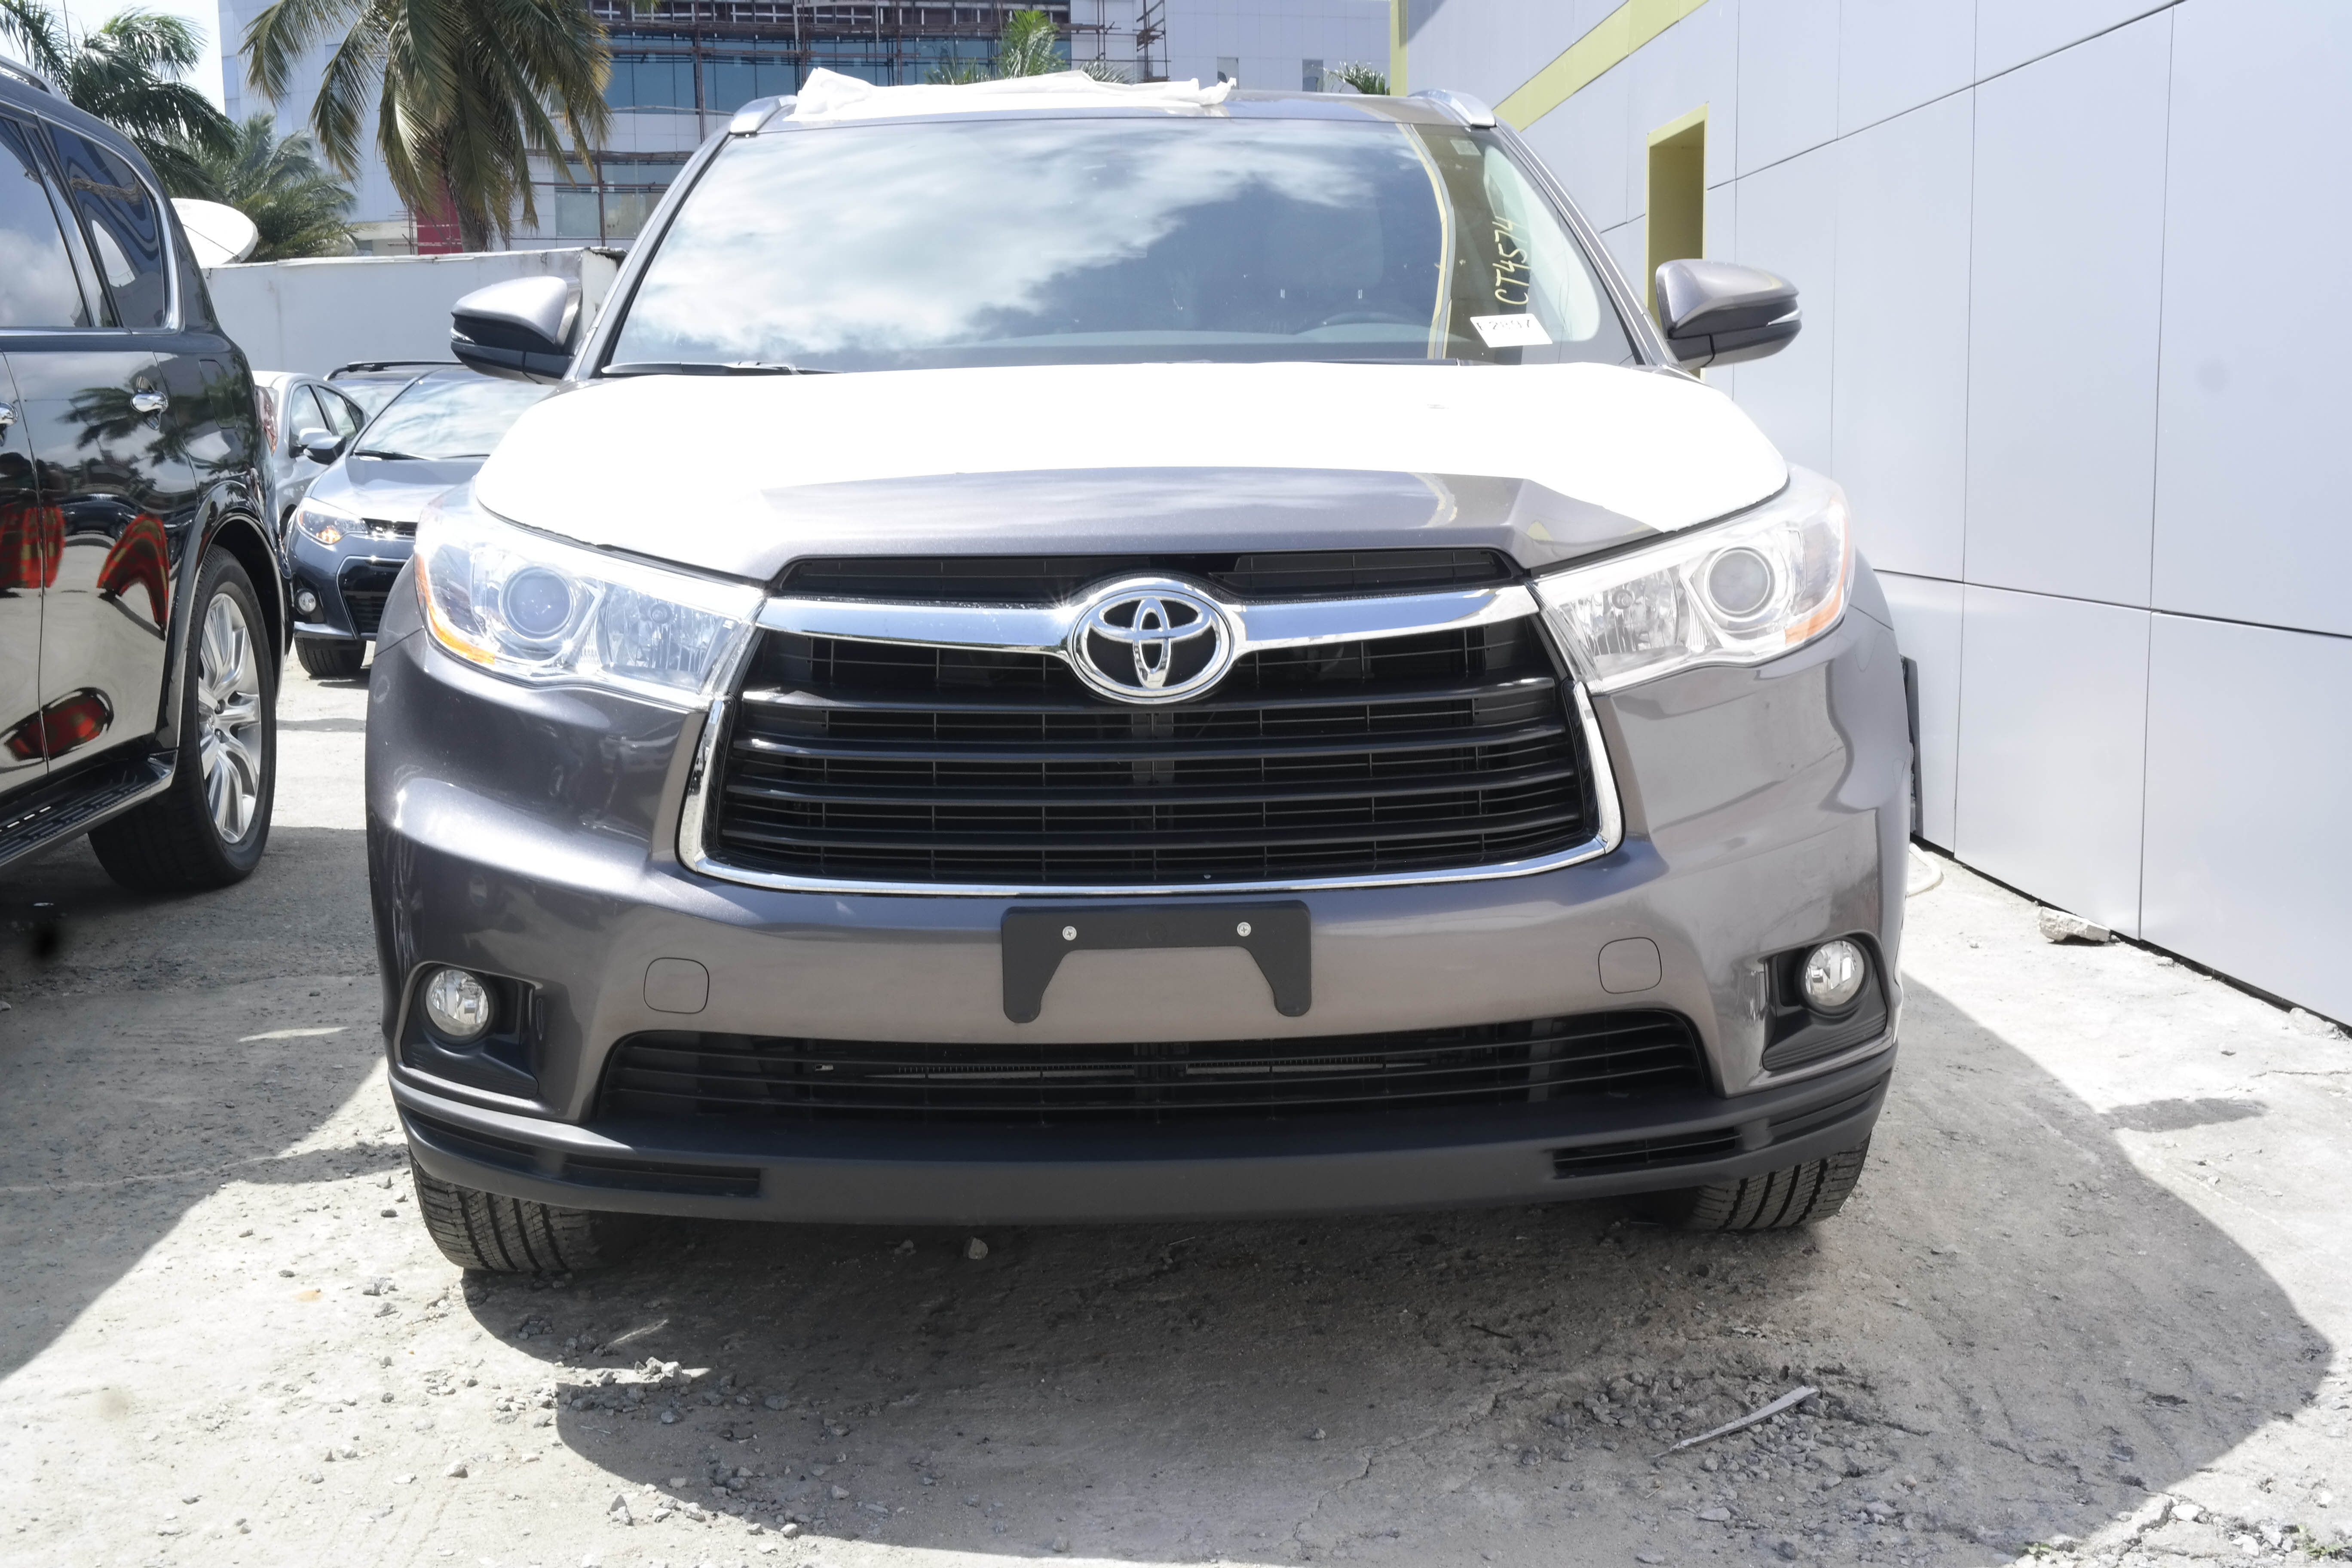 truckster highlander updated toyota limited review the platinum family profile